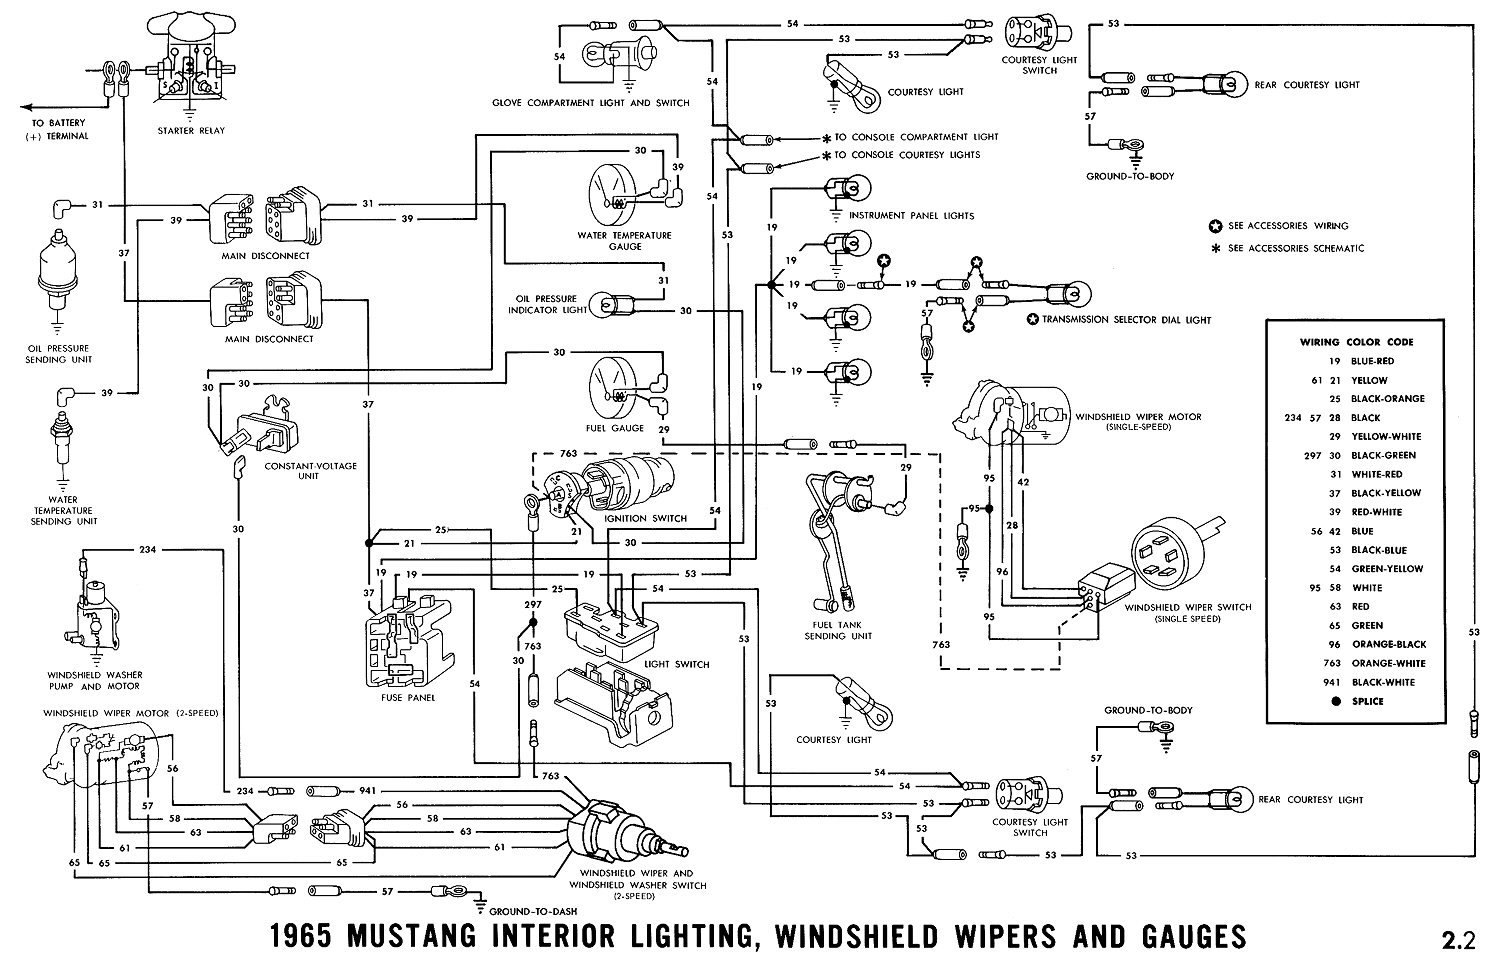 1965 Oldsmobile Wiring Harness Electrical Diagram House 1969 1970 Chevrolet 1966 Chevelle Image Rh Lamphue Tripa Co